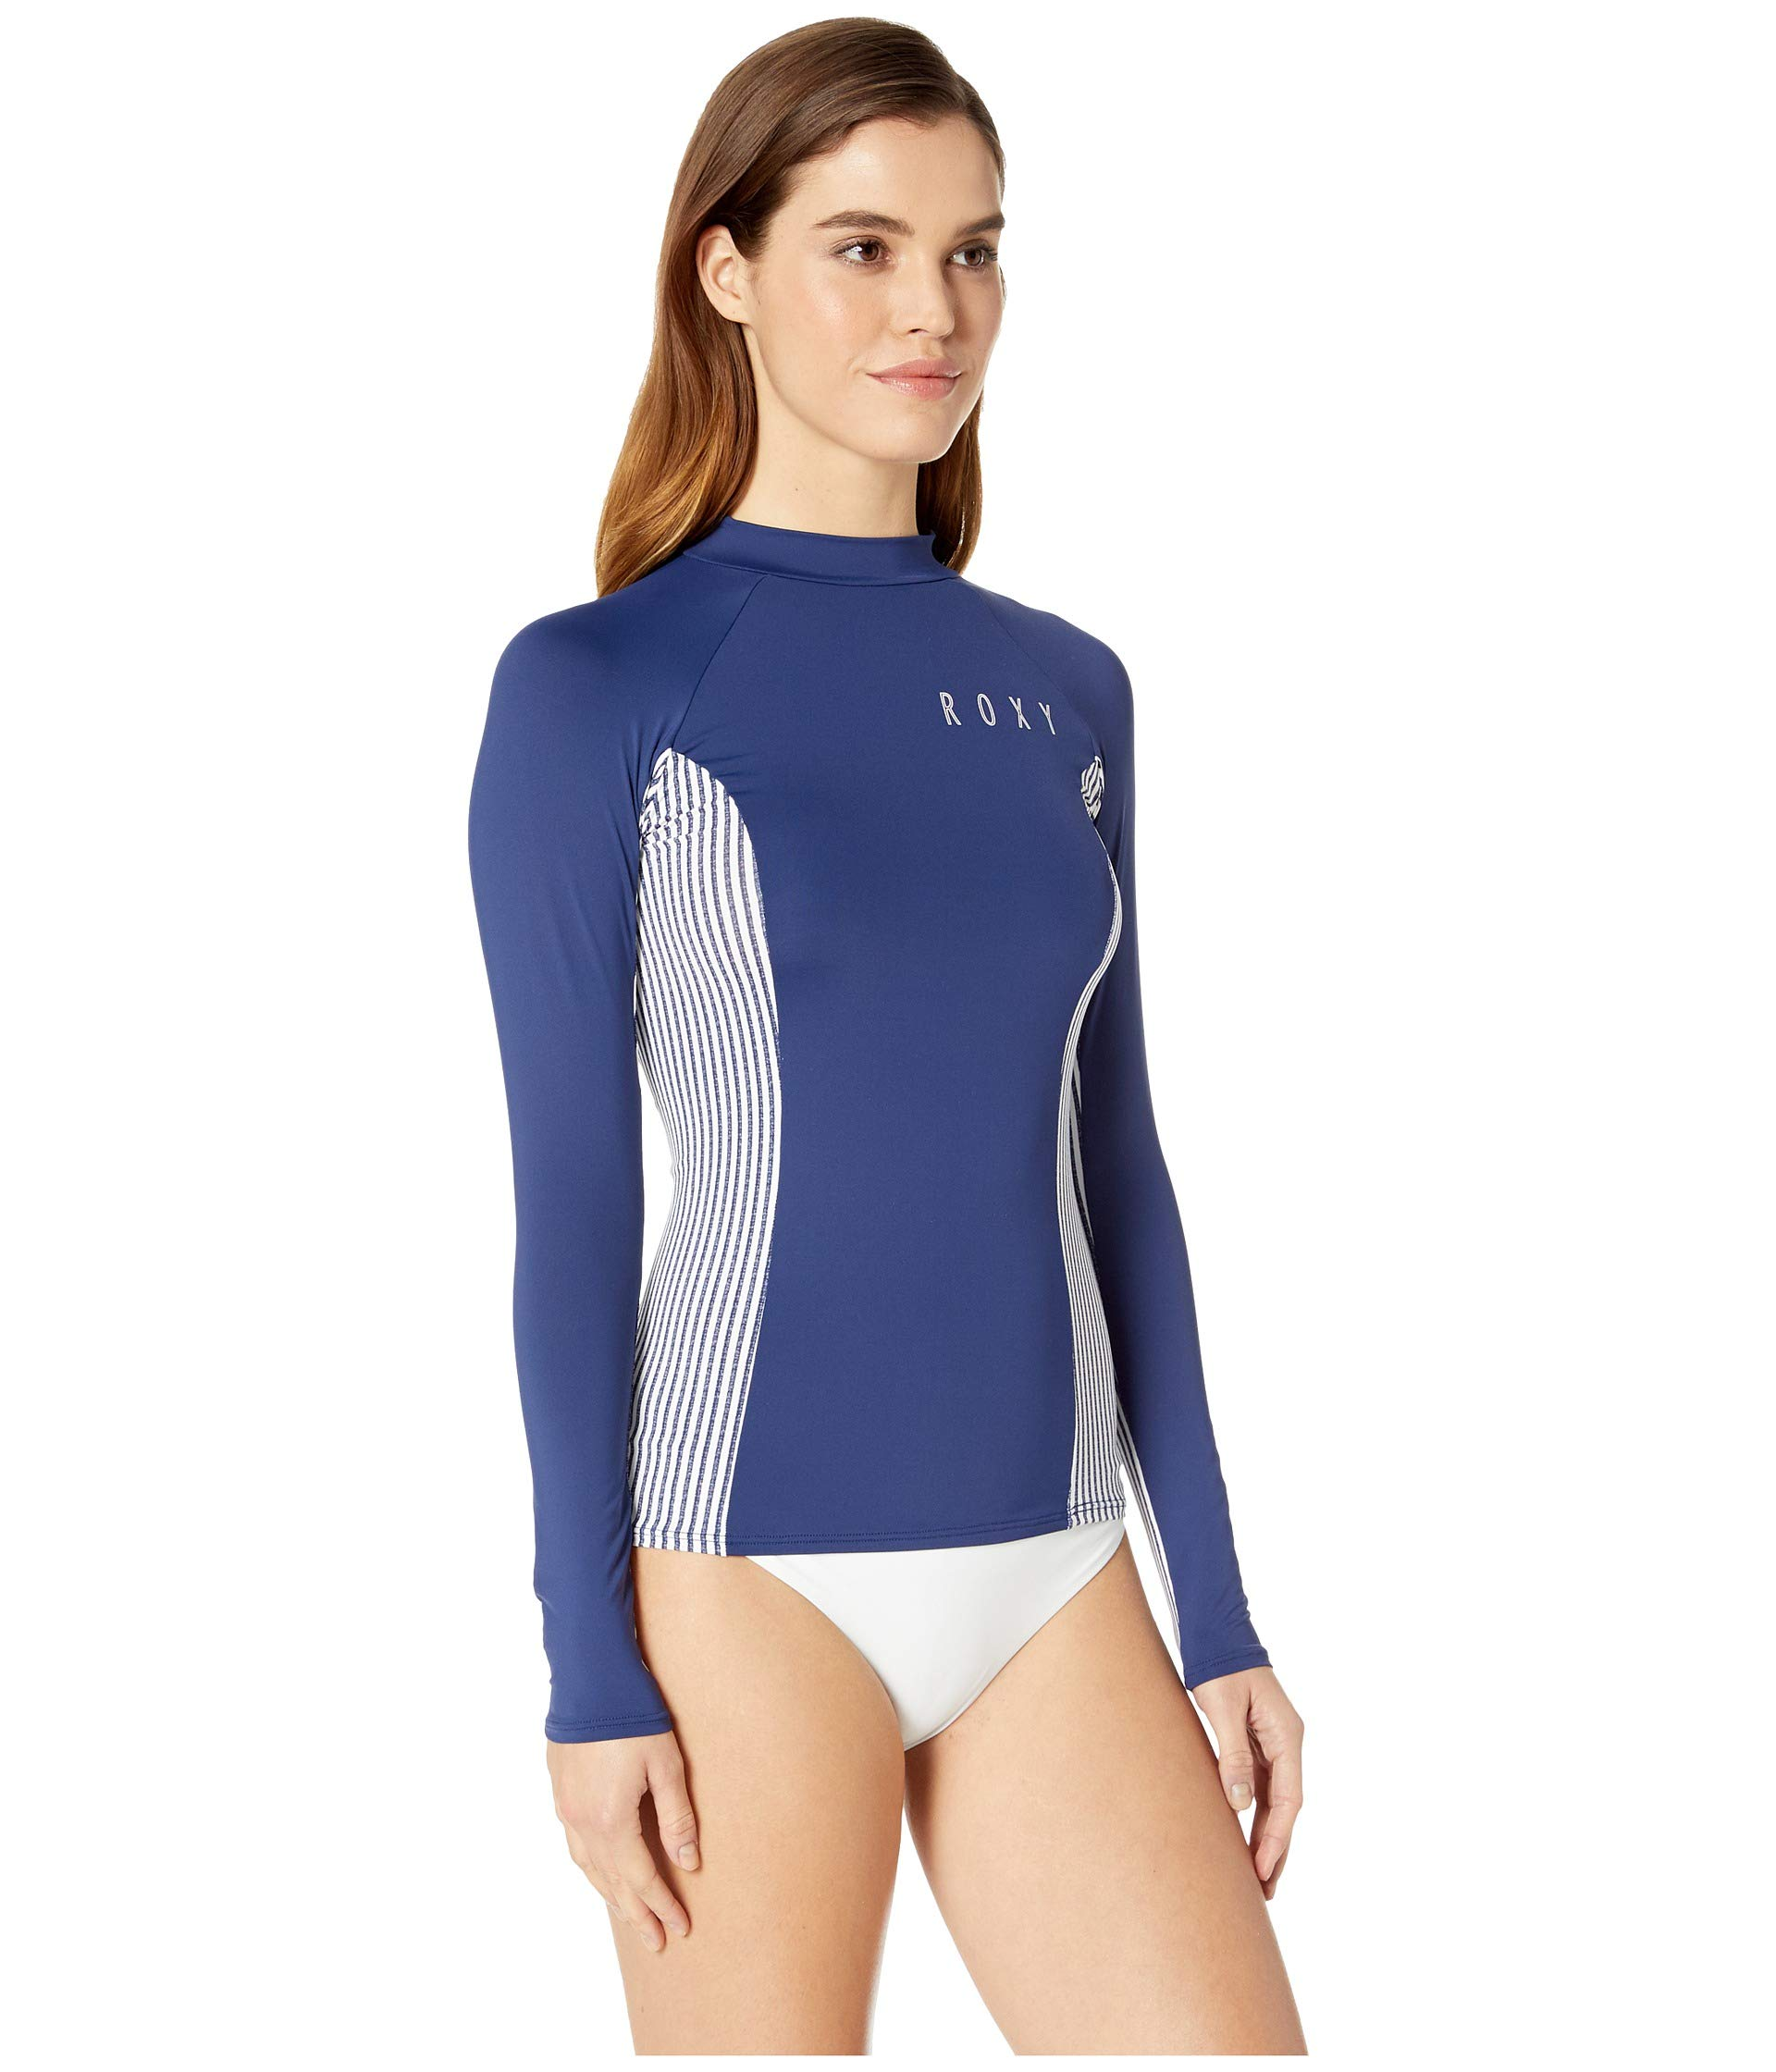 Sleeve Love Roxy Medium Stripe Softly Rashguard Printed Long Blue Cornfield xqHnqrTIwS